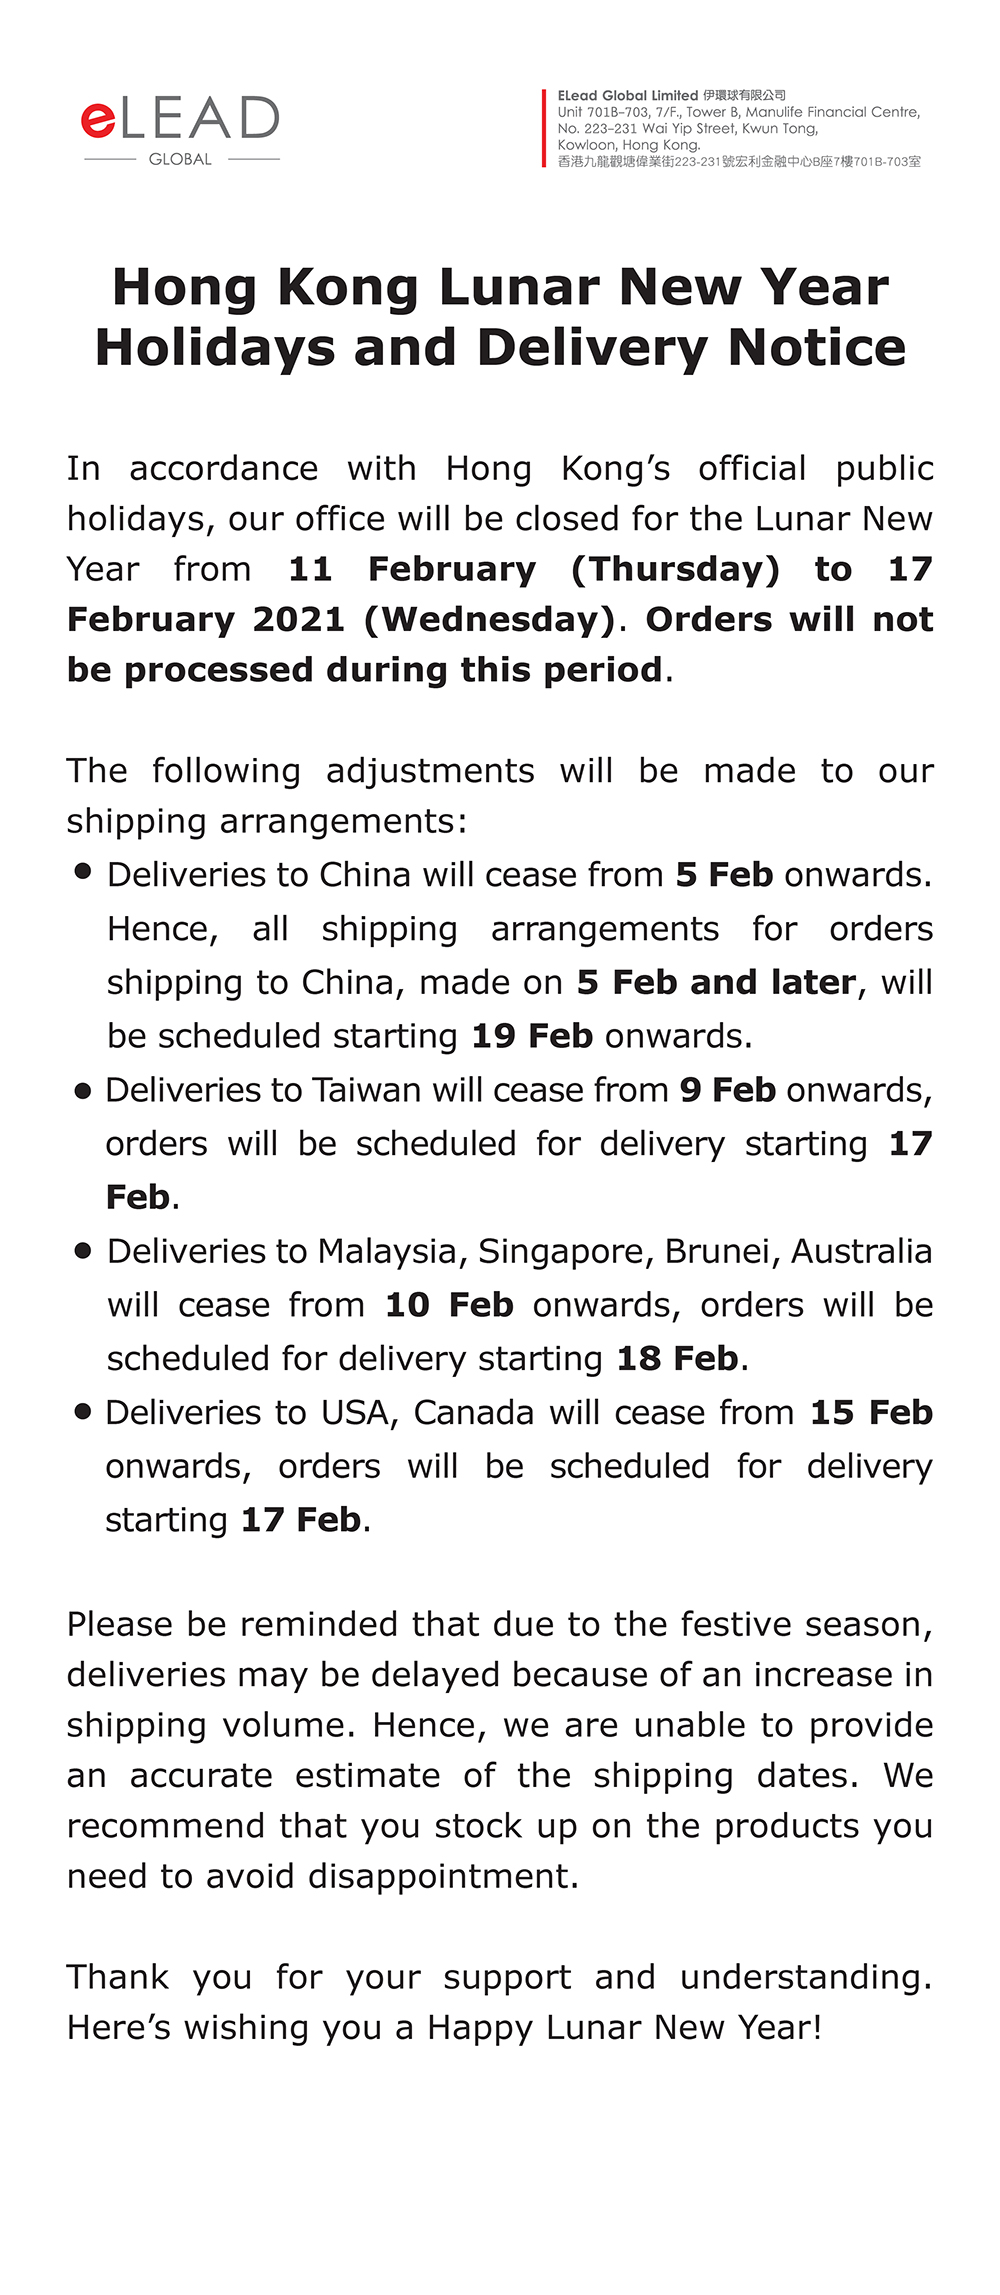 Hong Kong Lunar New Year Holidays and Delivery Notice